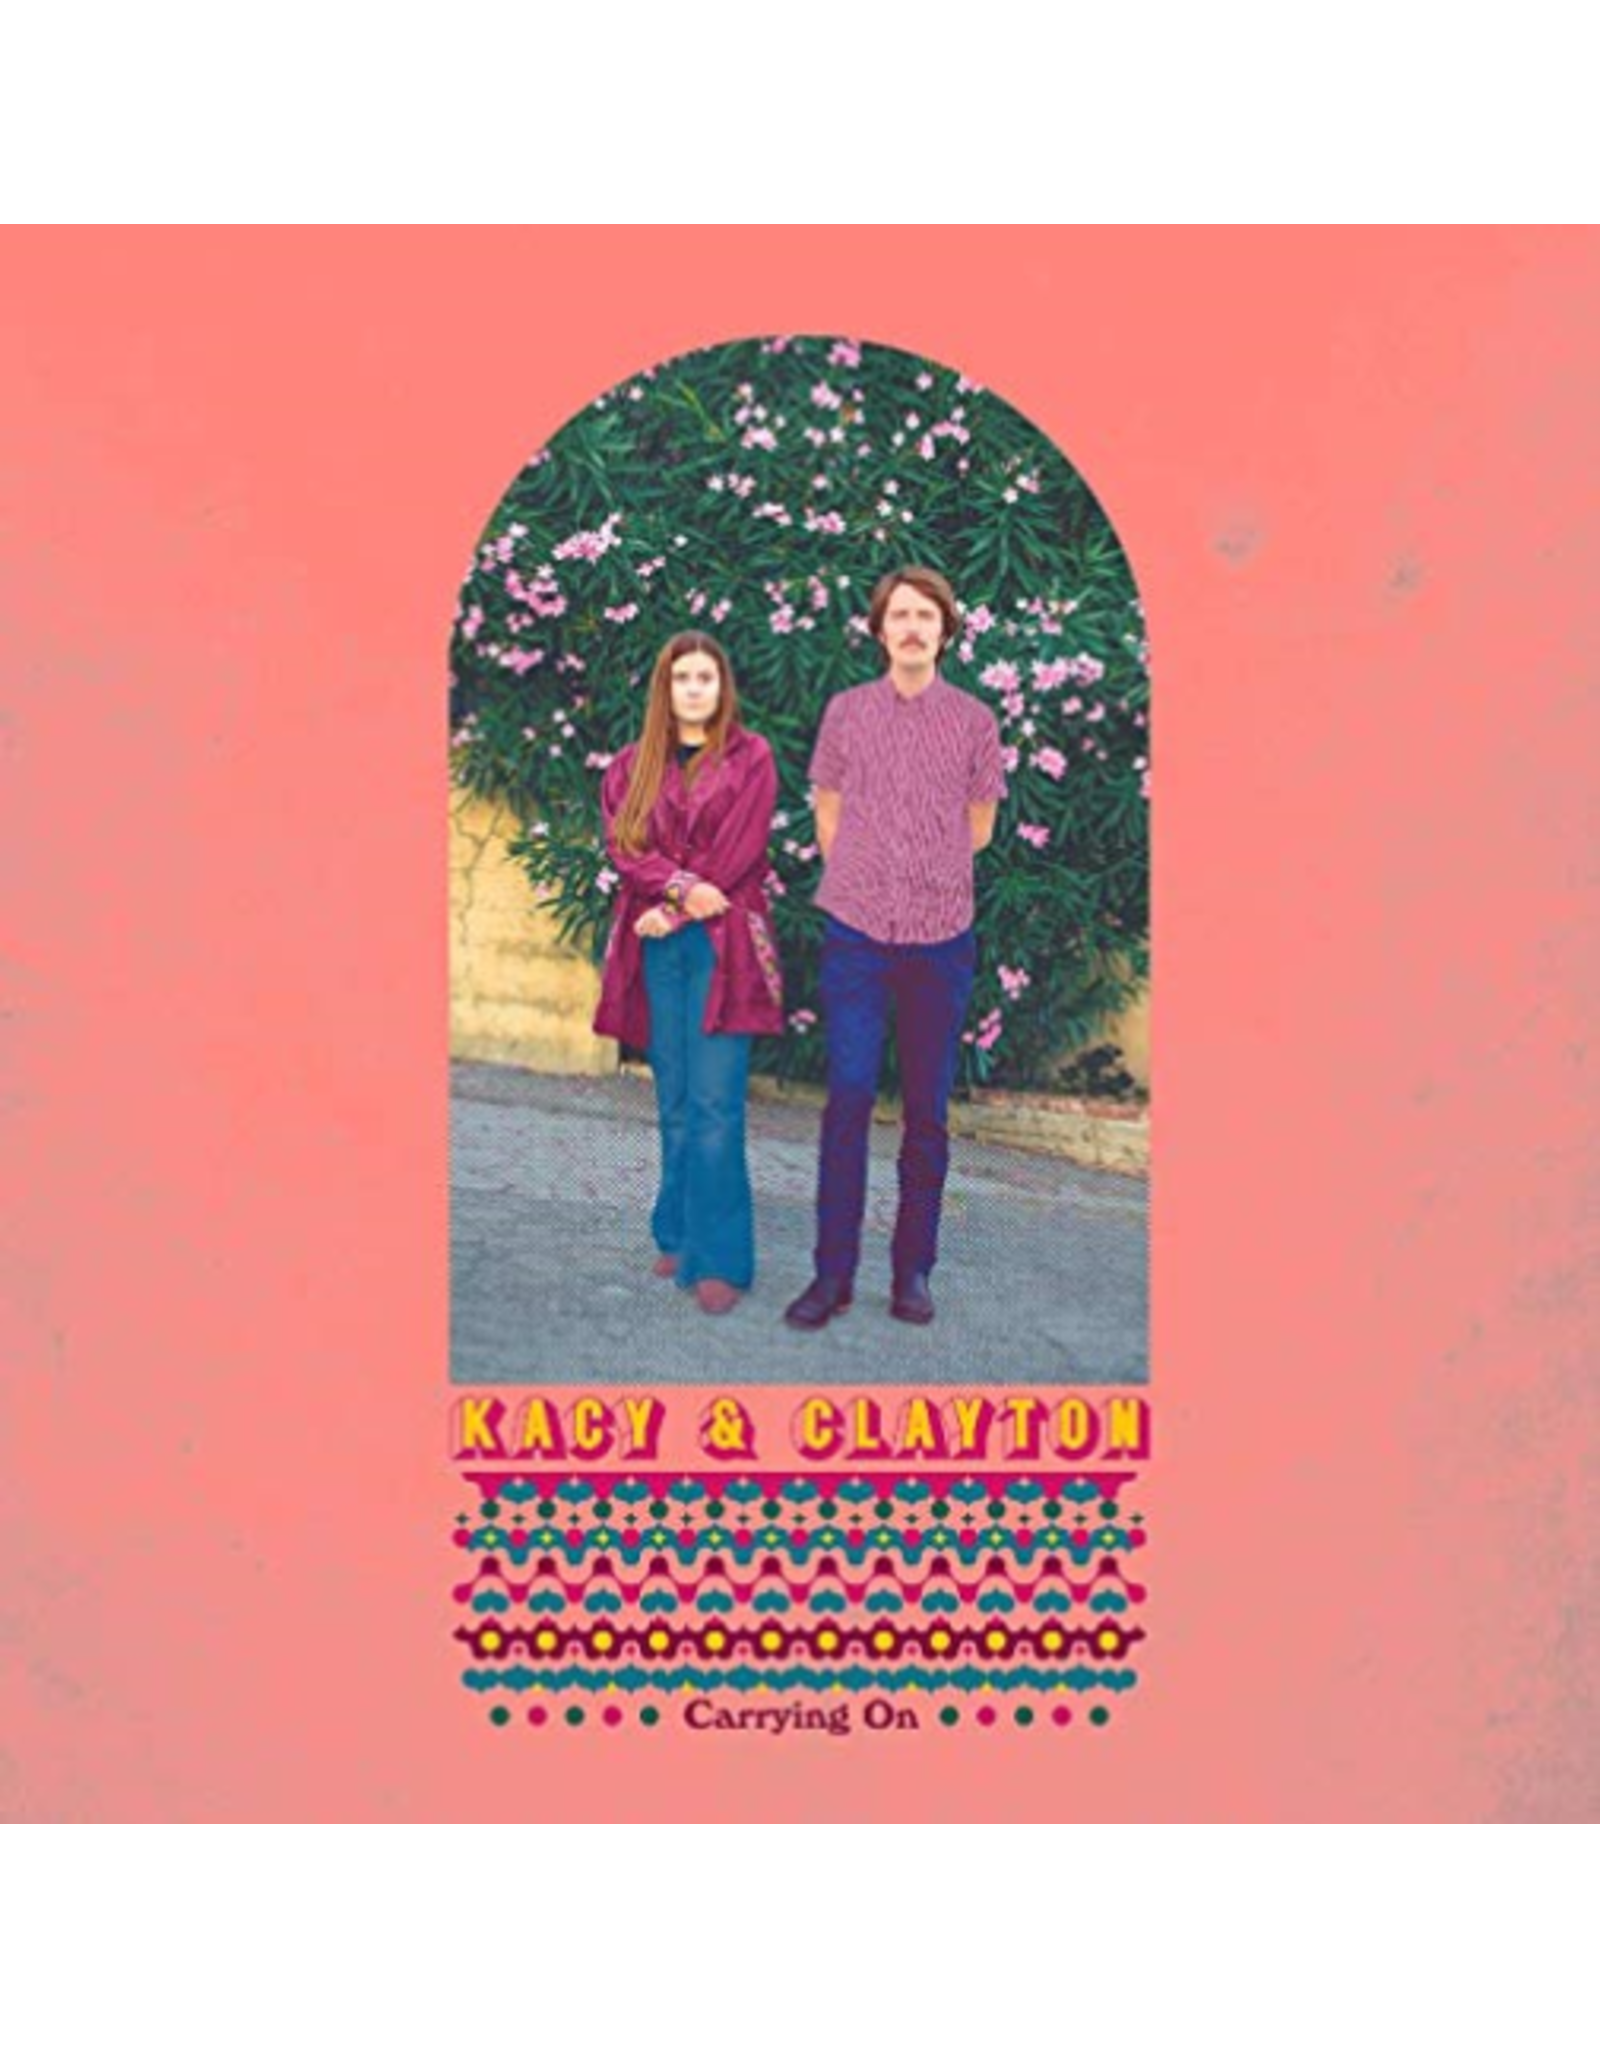 Kacey & Clayton - Carrying On LP (indie)